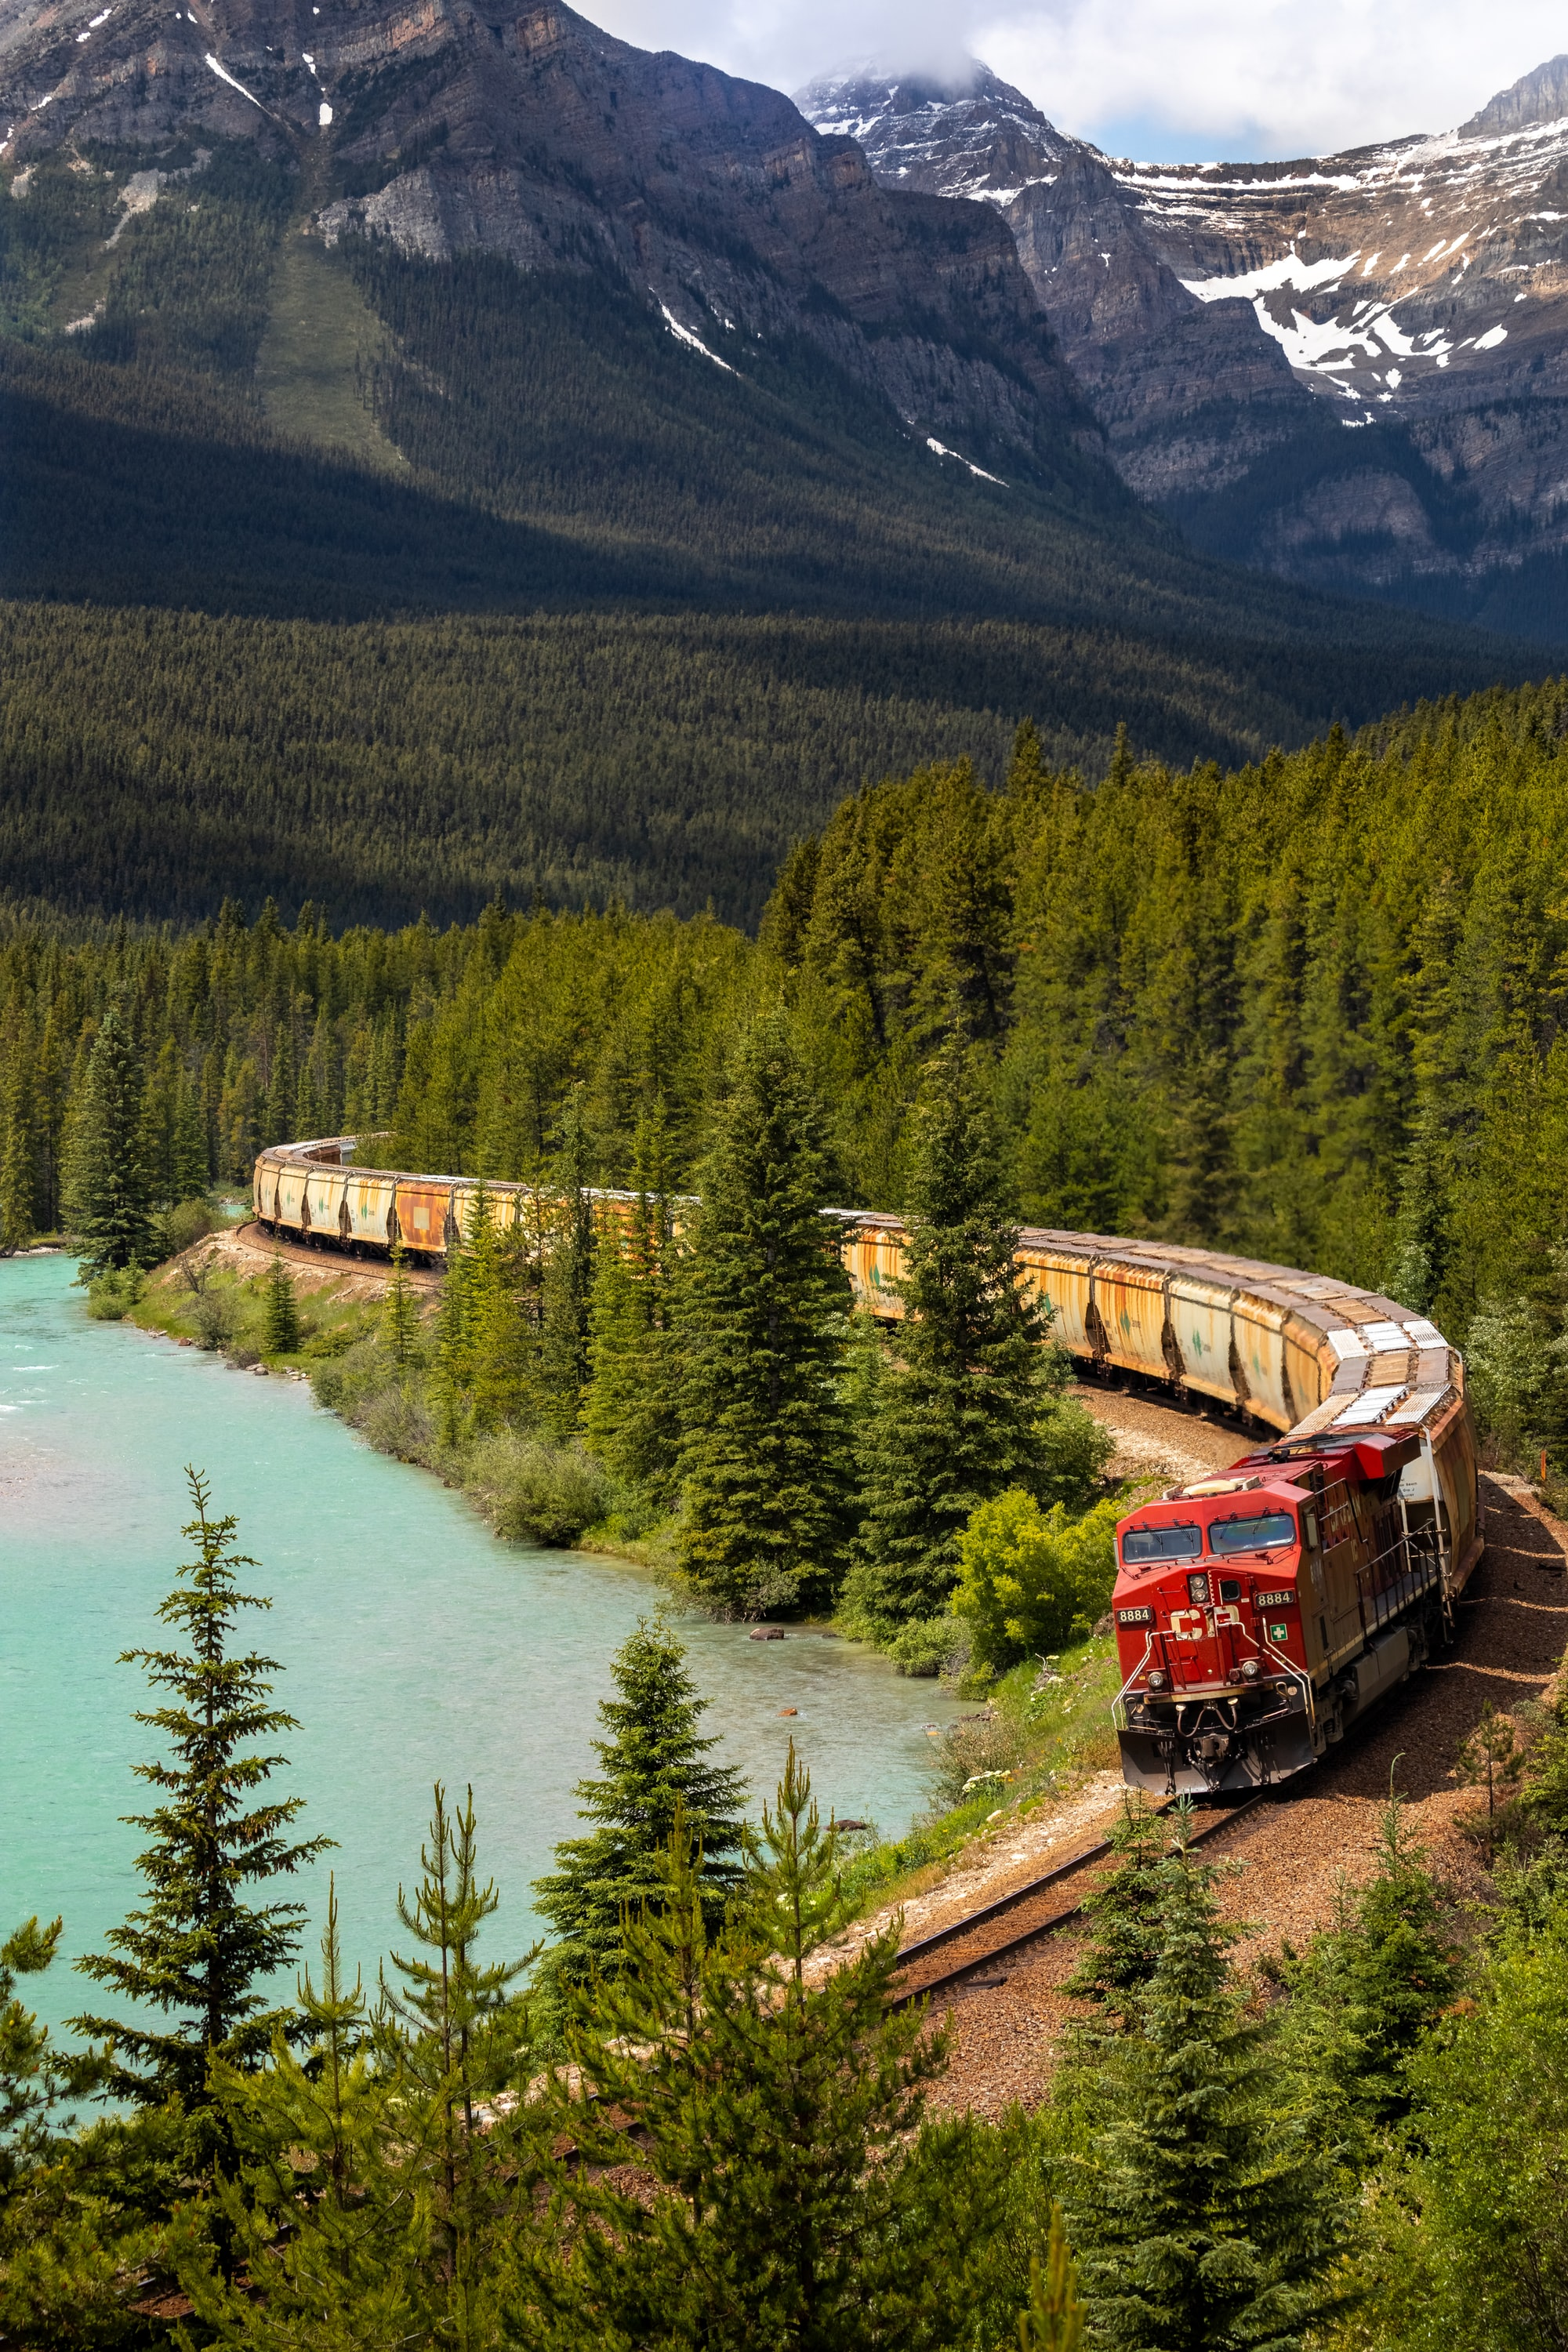 A freight train winds it way along a river through a pine forest.